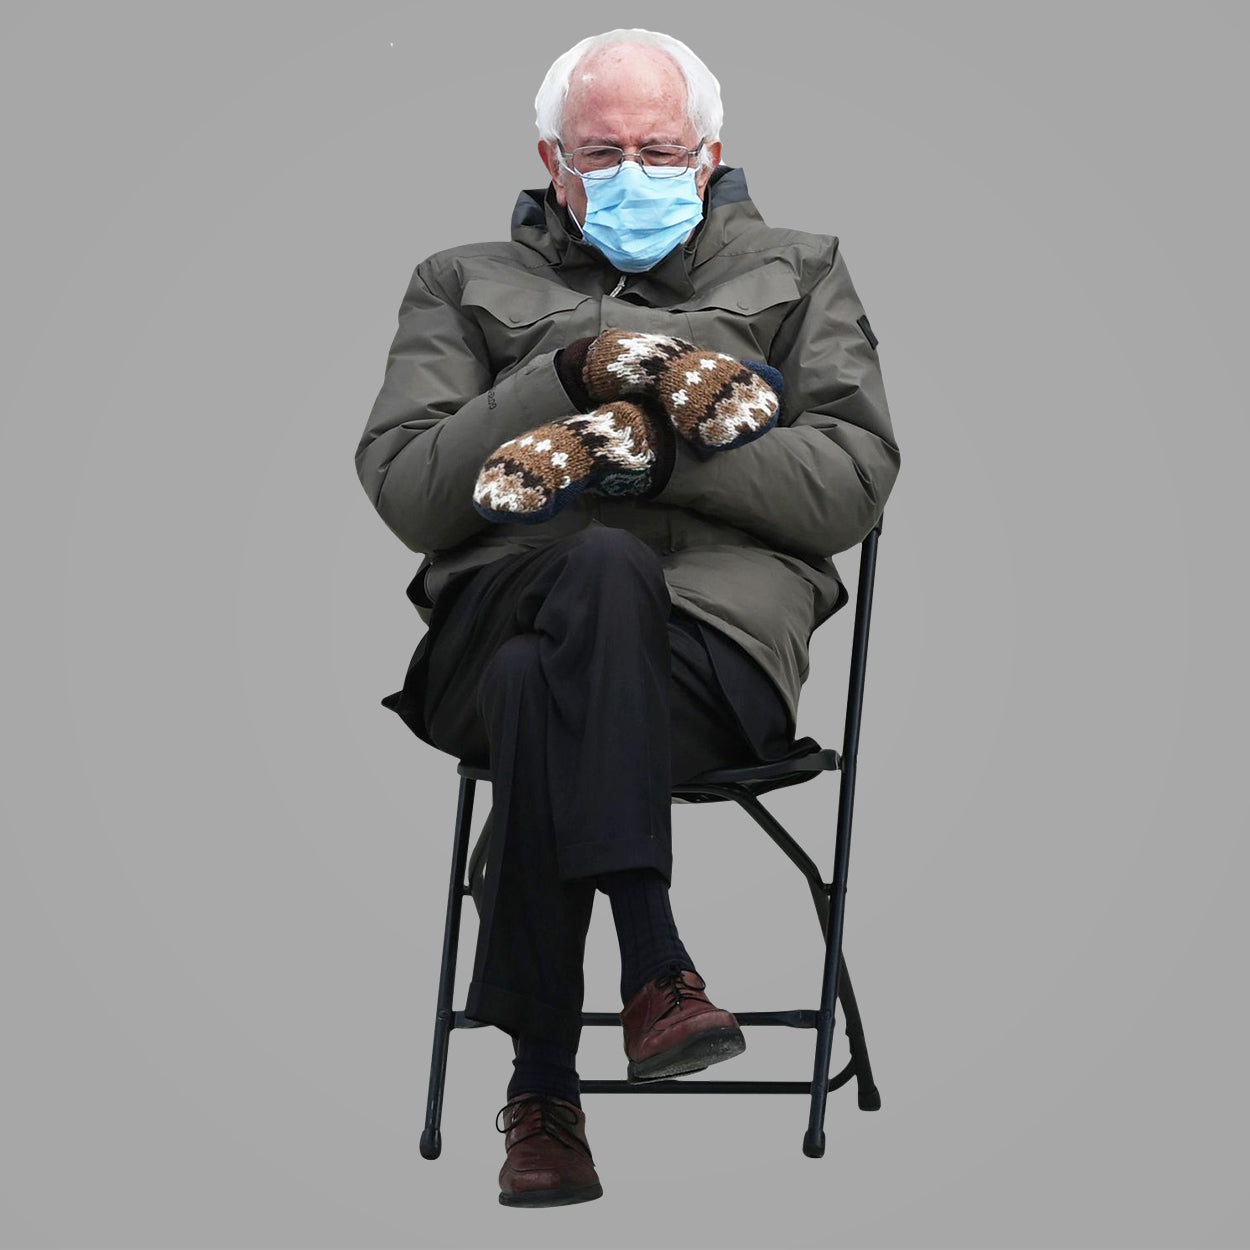 Bernie Sitting in the Cold with Mittens Meme